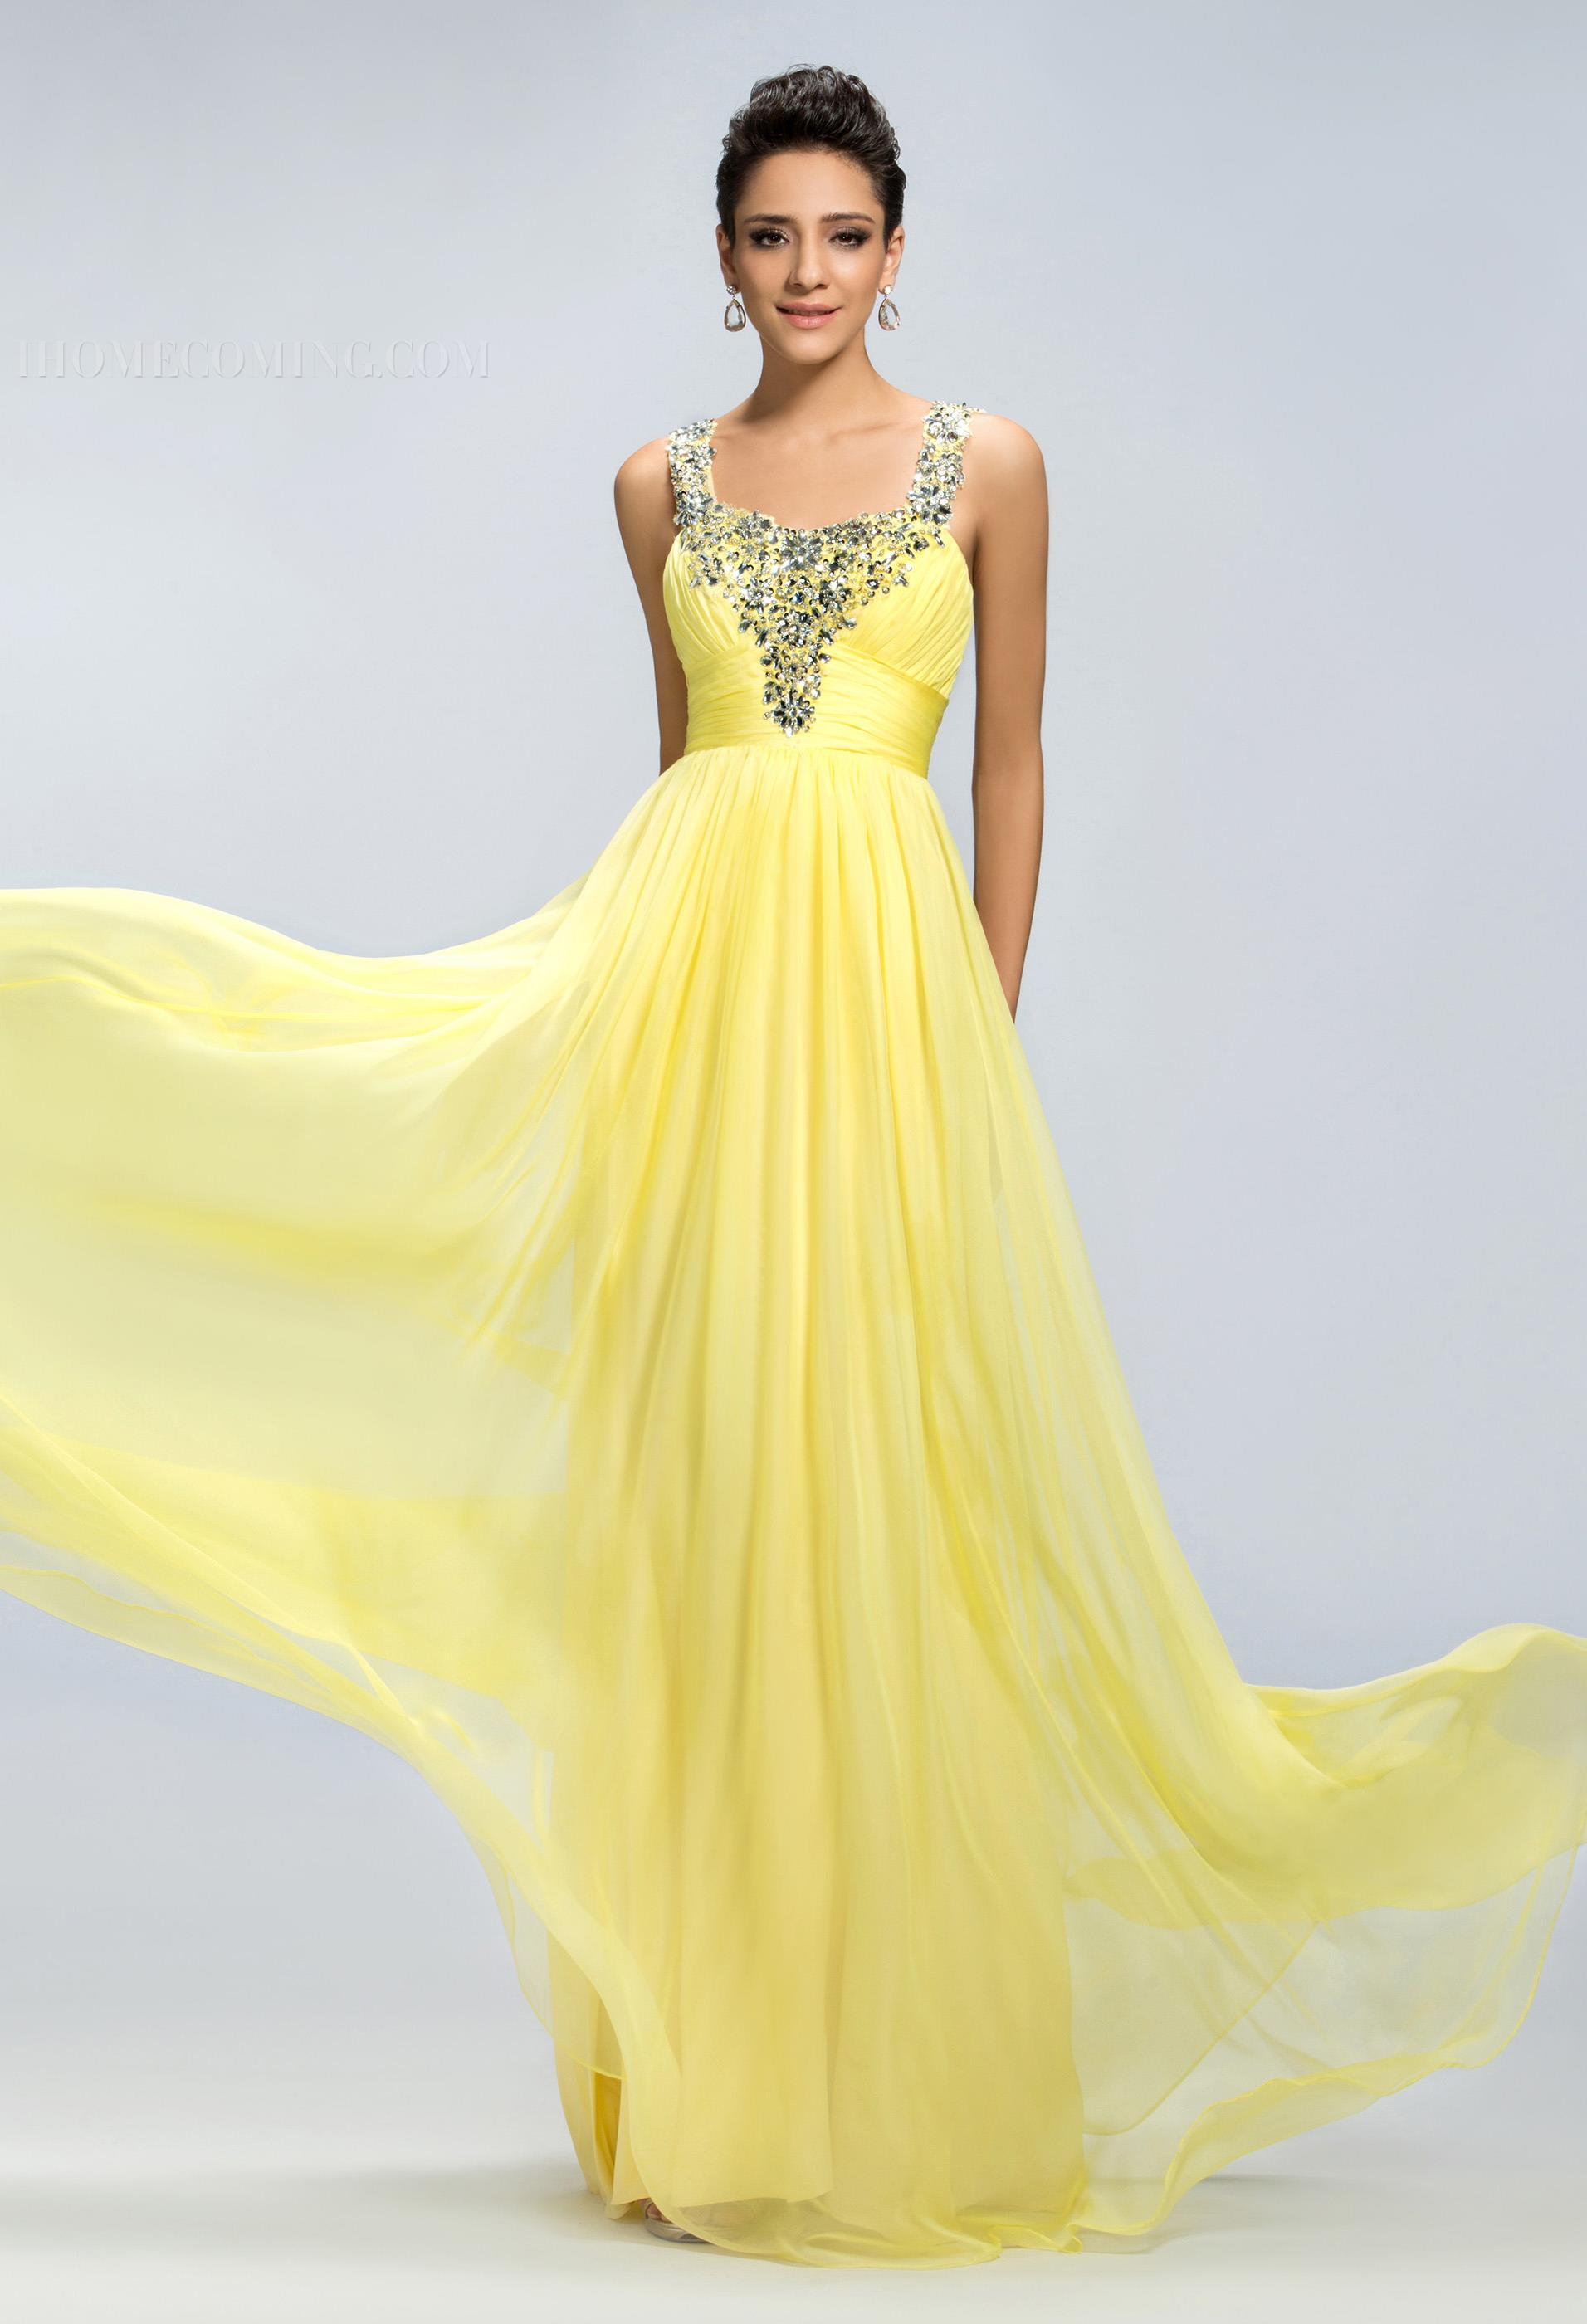 fashion shop online for evening dresses